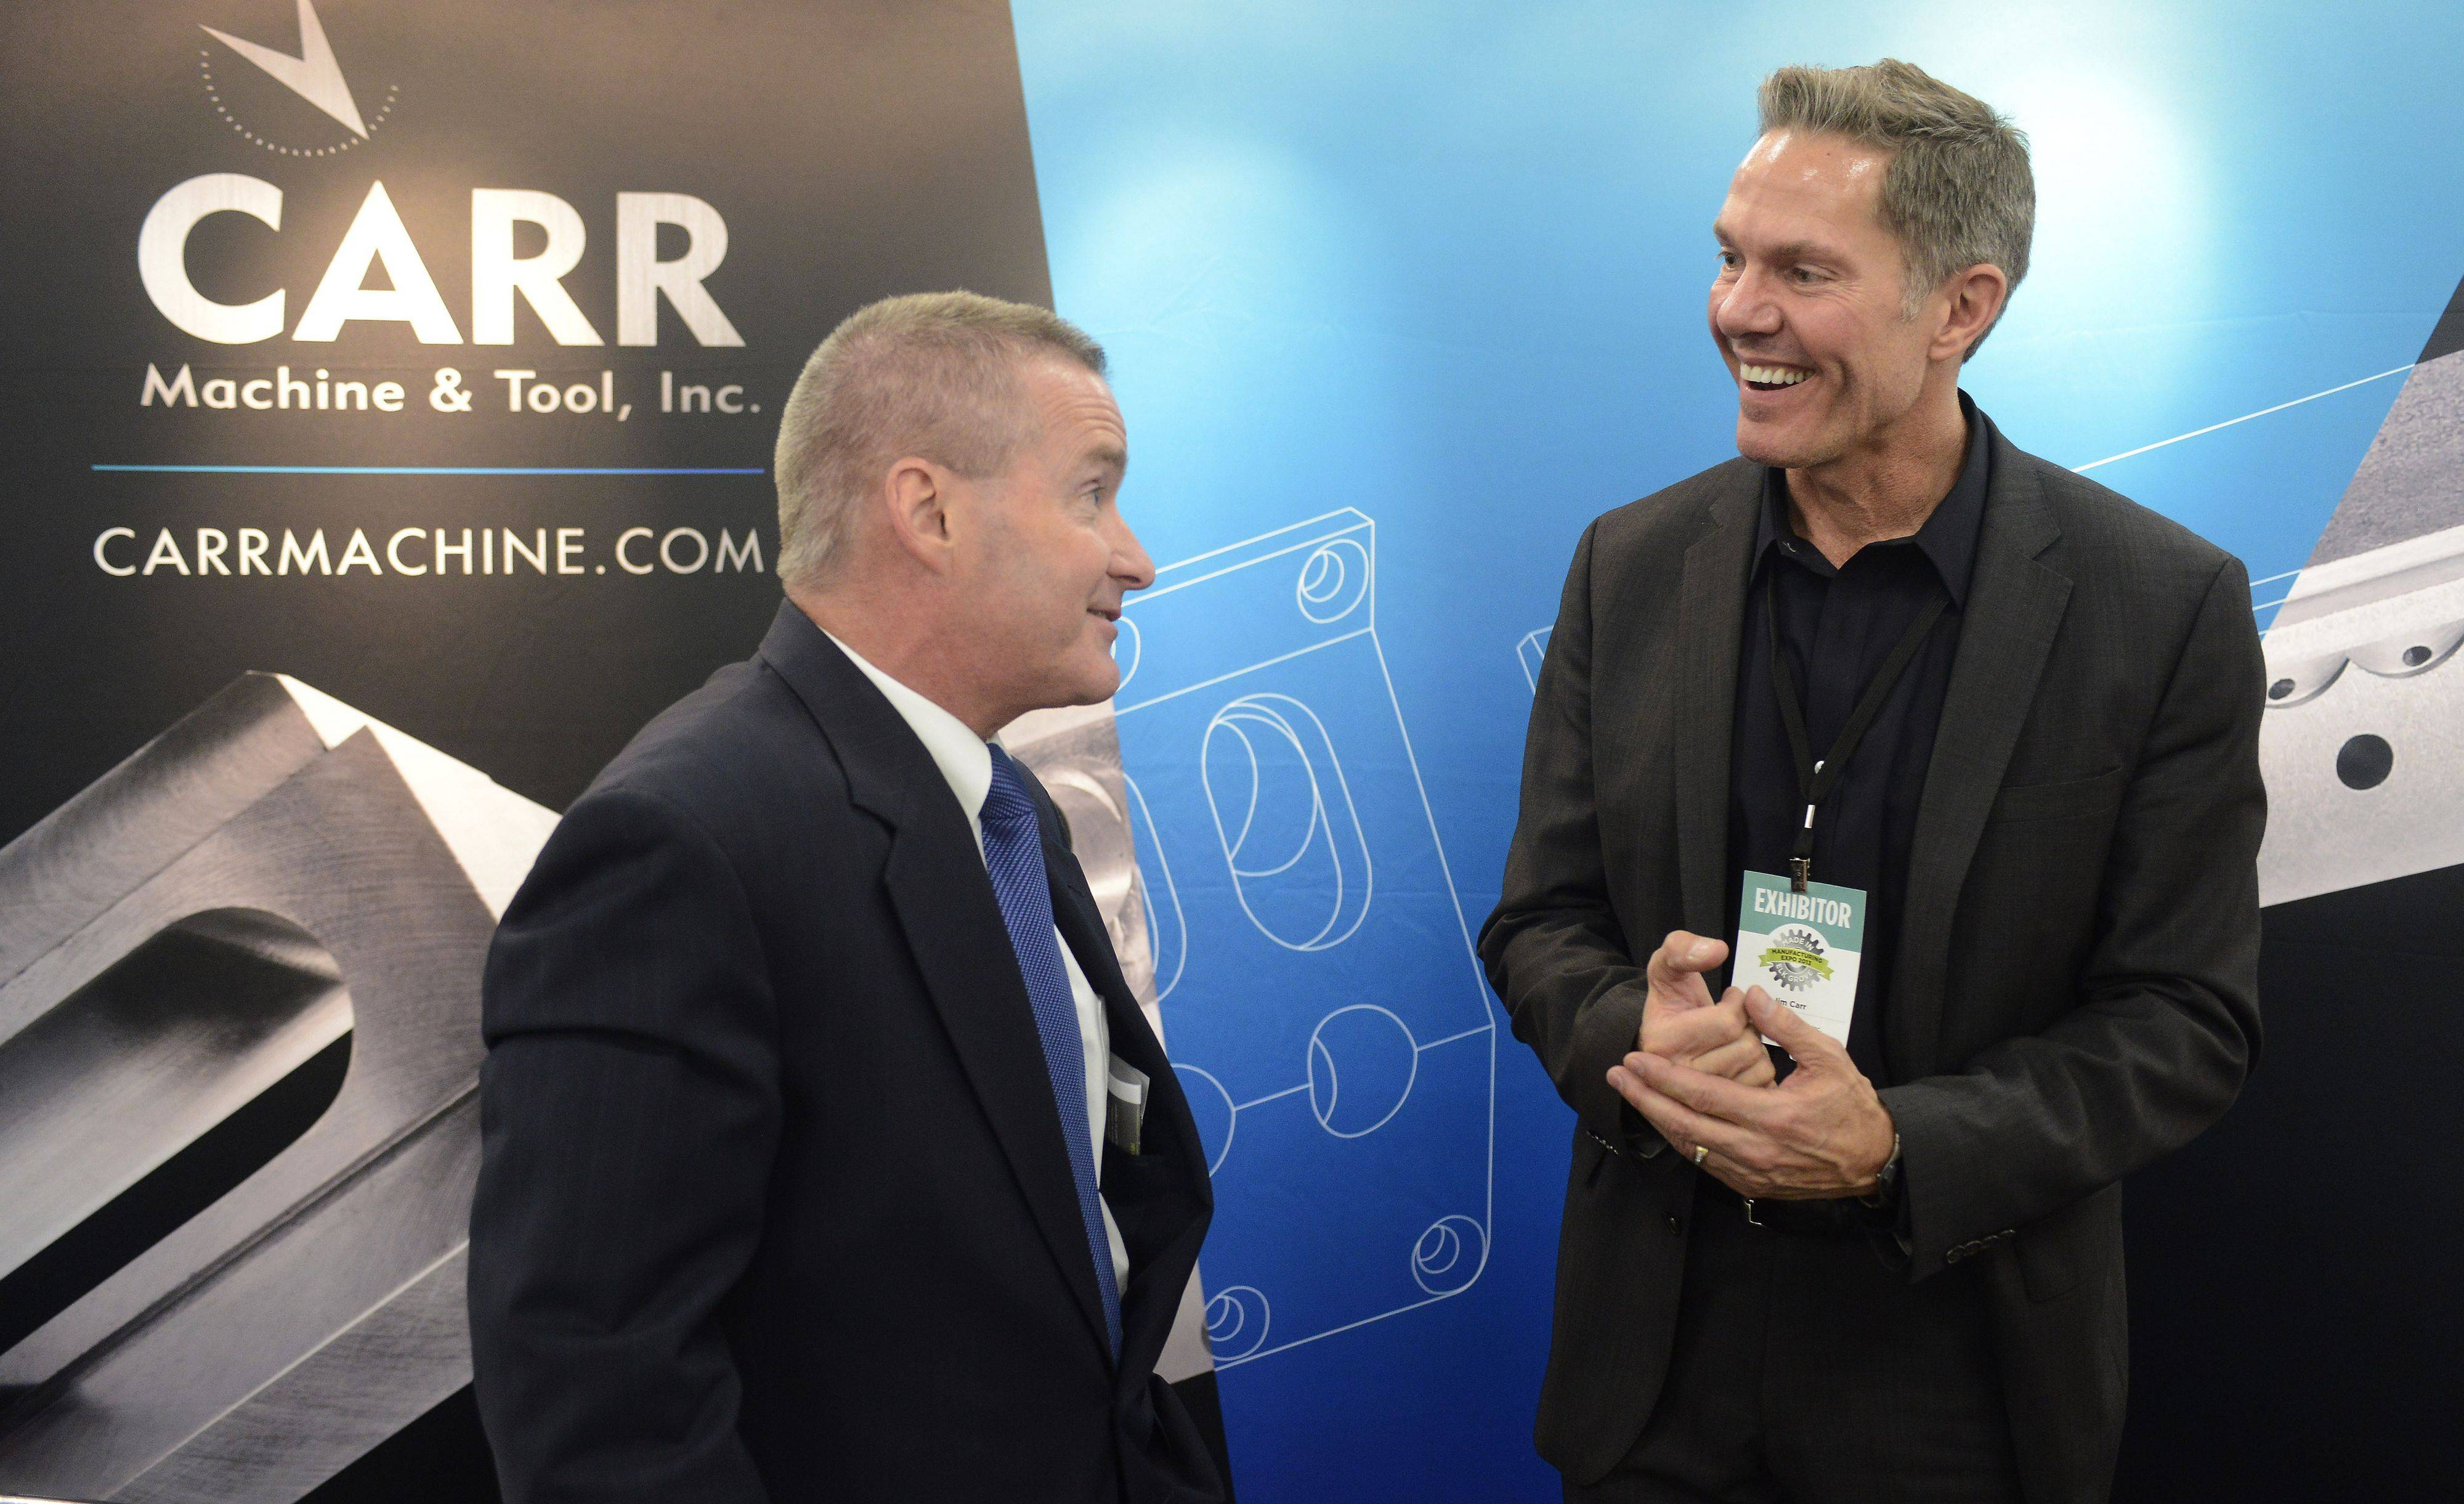 JOE LEWNARD/jlewnard@dailyherald.comElk Grove Village Mayor Craig Johnson, left, chats with Jim Carr, President of Carr Machine & Tool, Inc., during the Elk Grove Village business expo Tuesday.